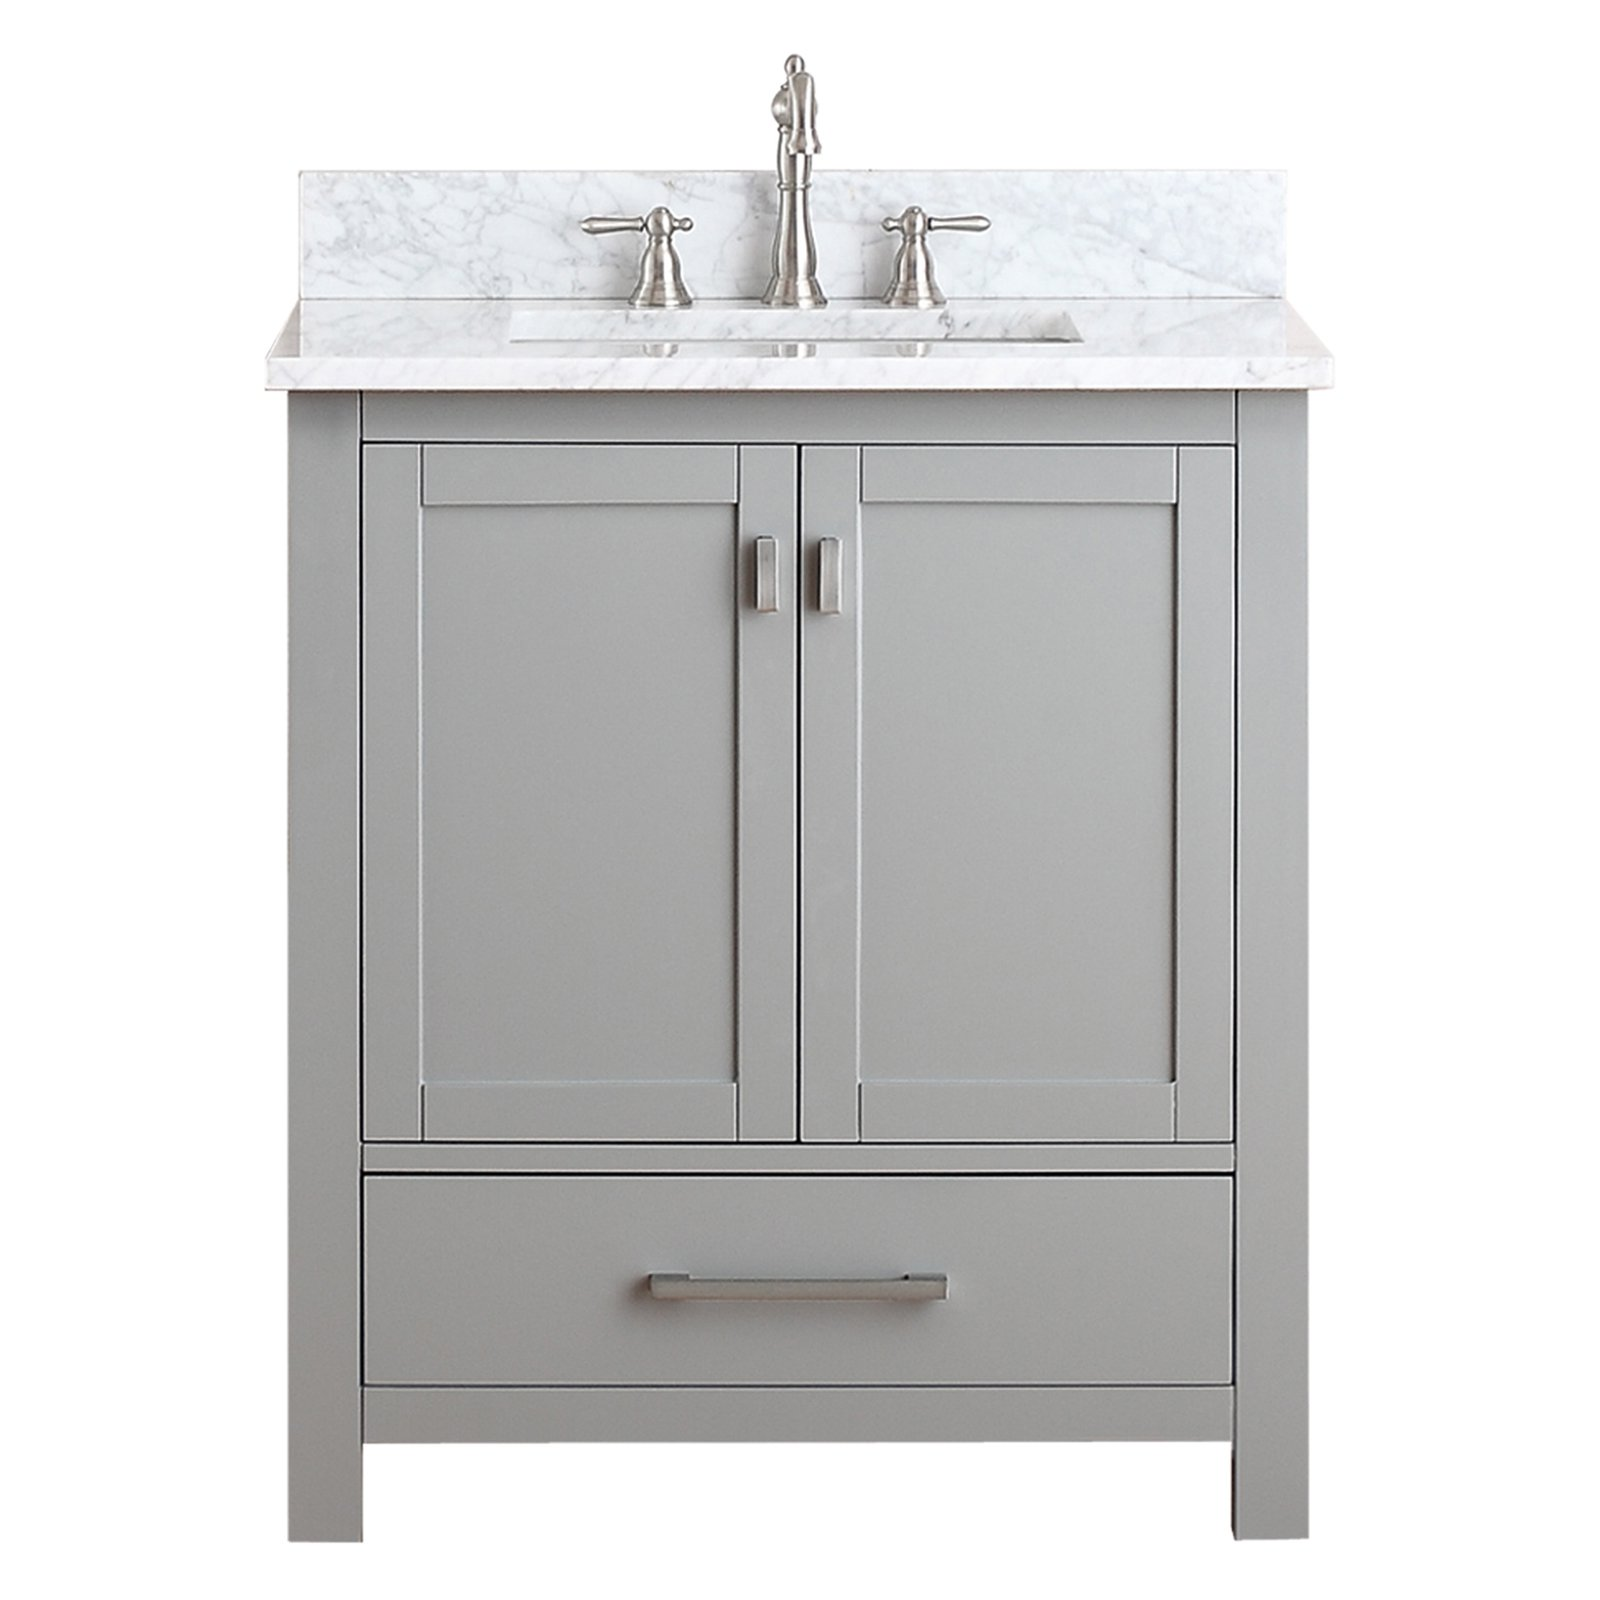 Avanity Modero Vs30 Cg Modero 30 In Single Bathroom Vanity Marble